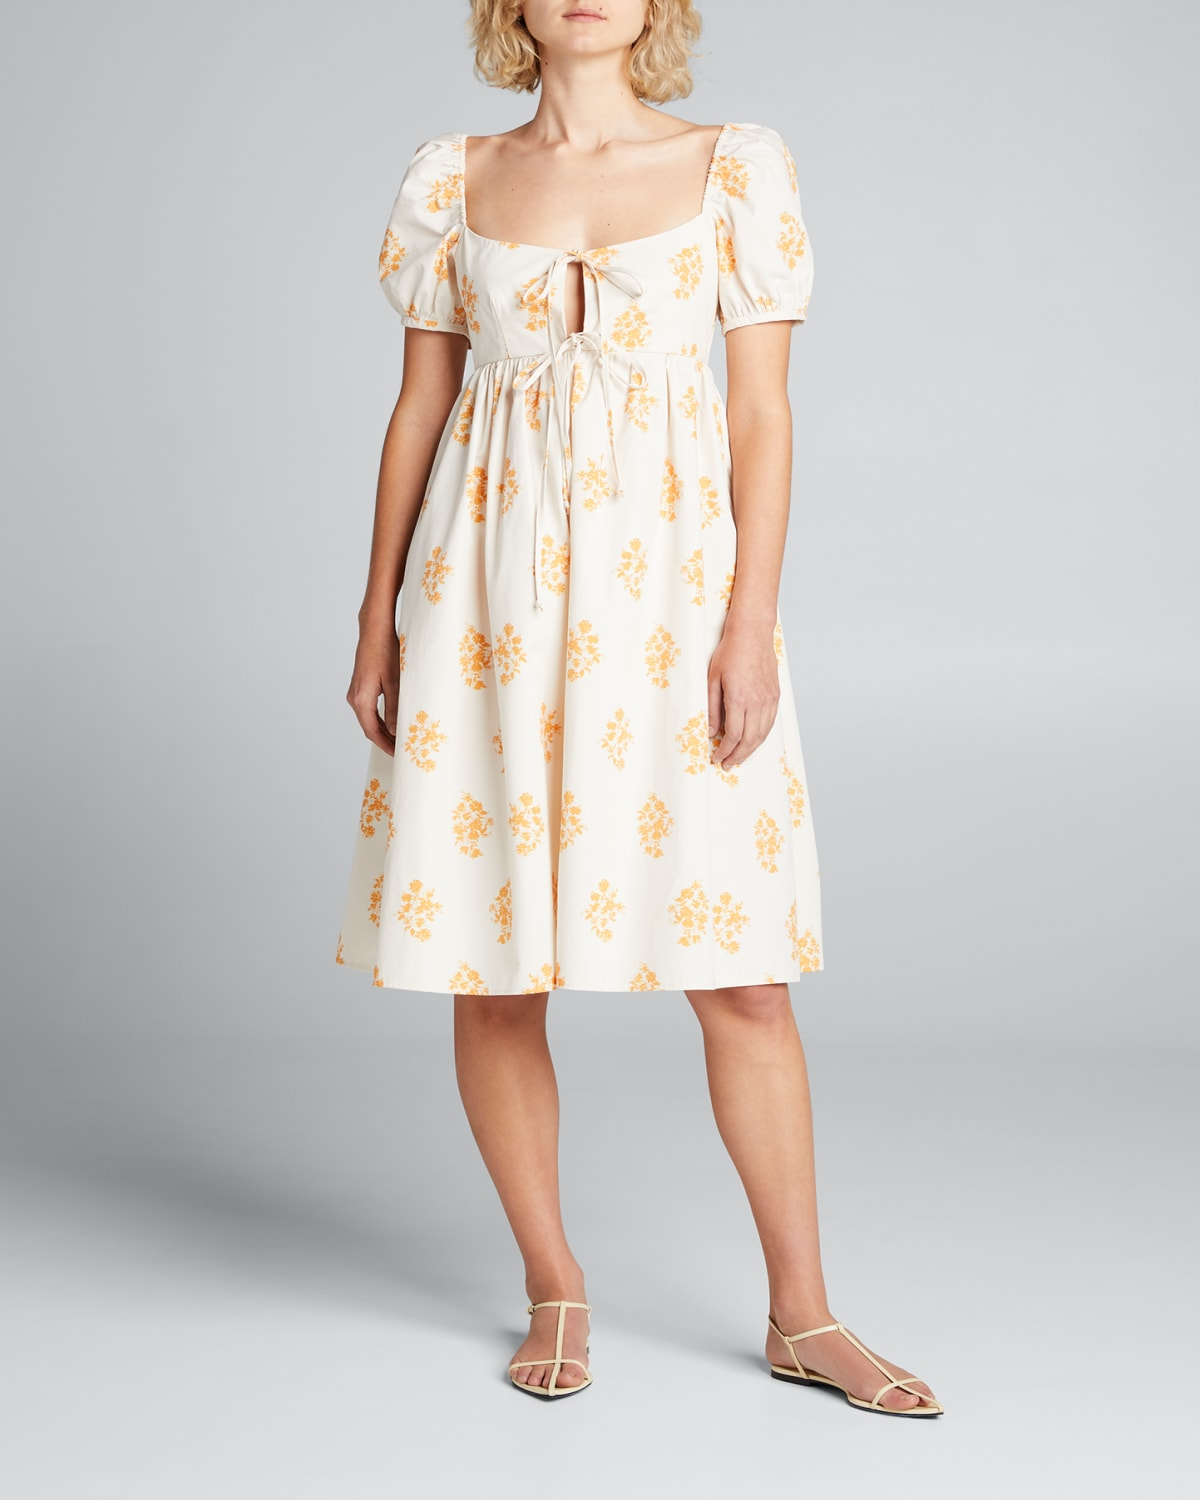 Alessia Printed Tie-Front Dress